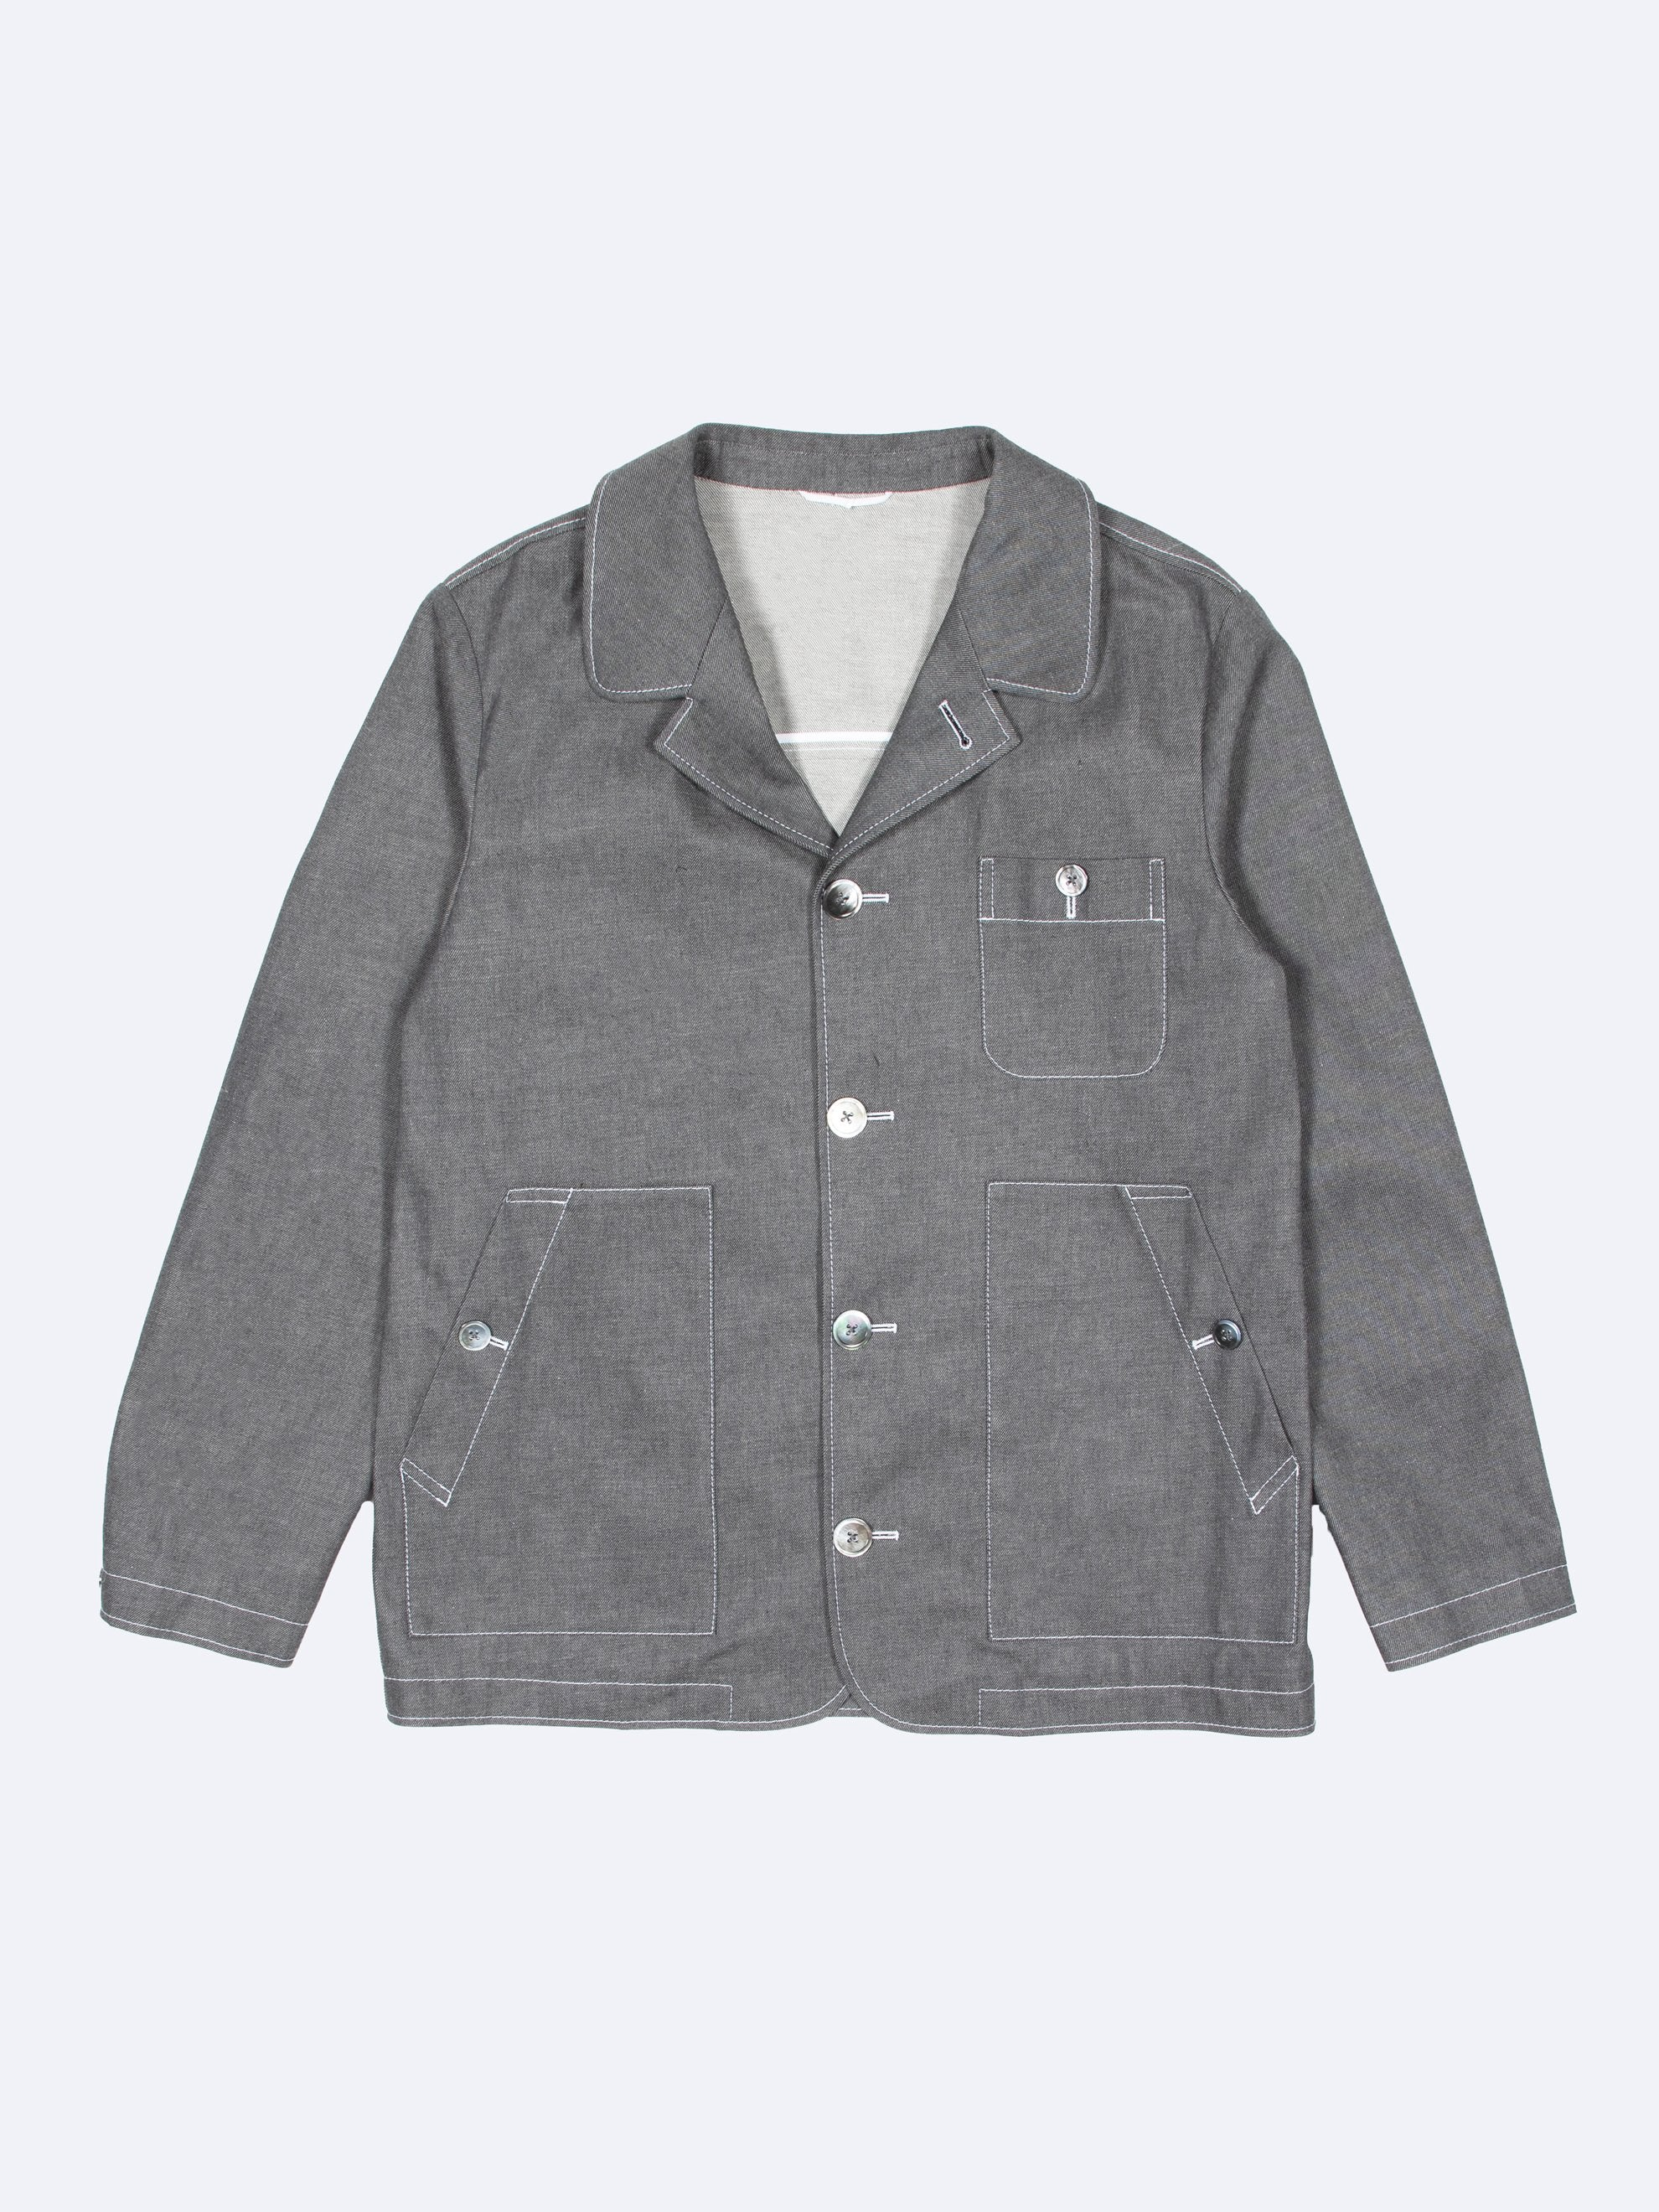 Med Grey Round Collar Button Up Square Patch Pocket Packet In Denim 1